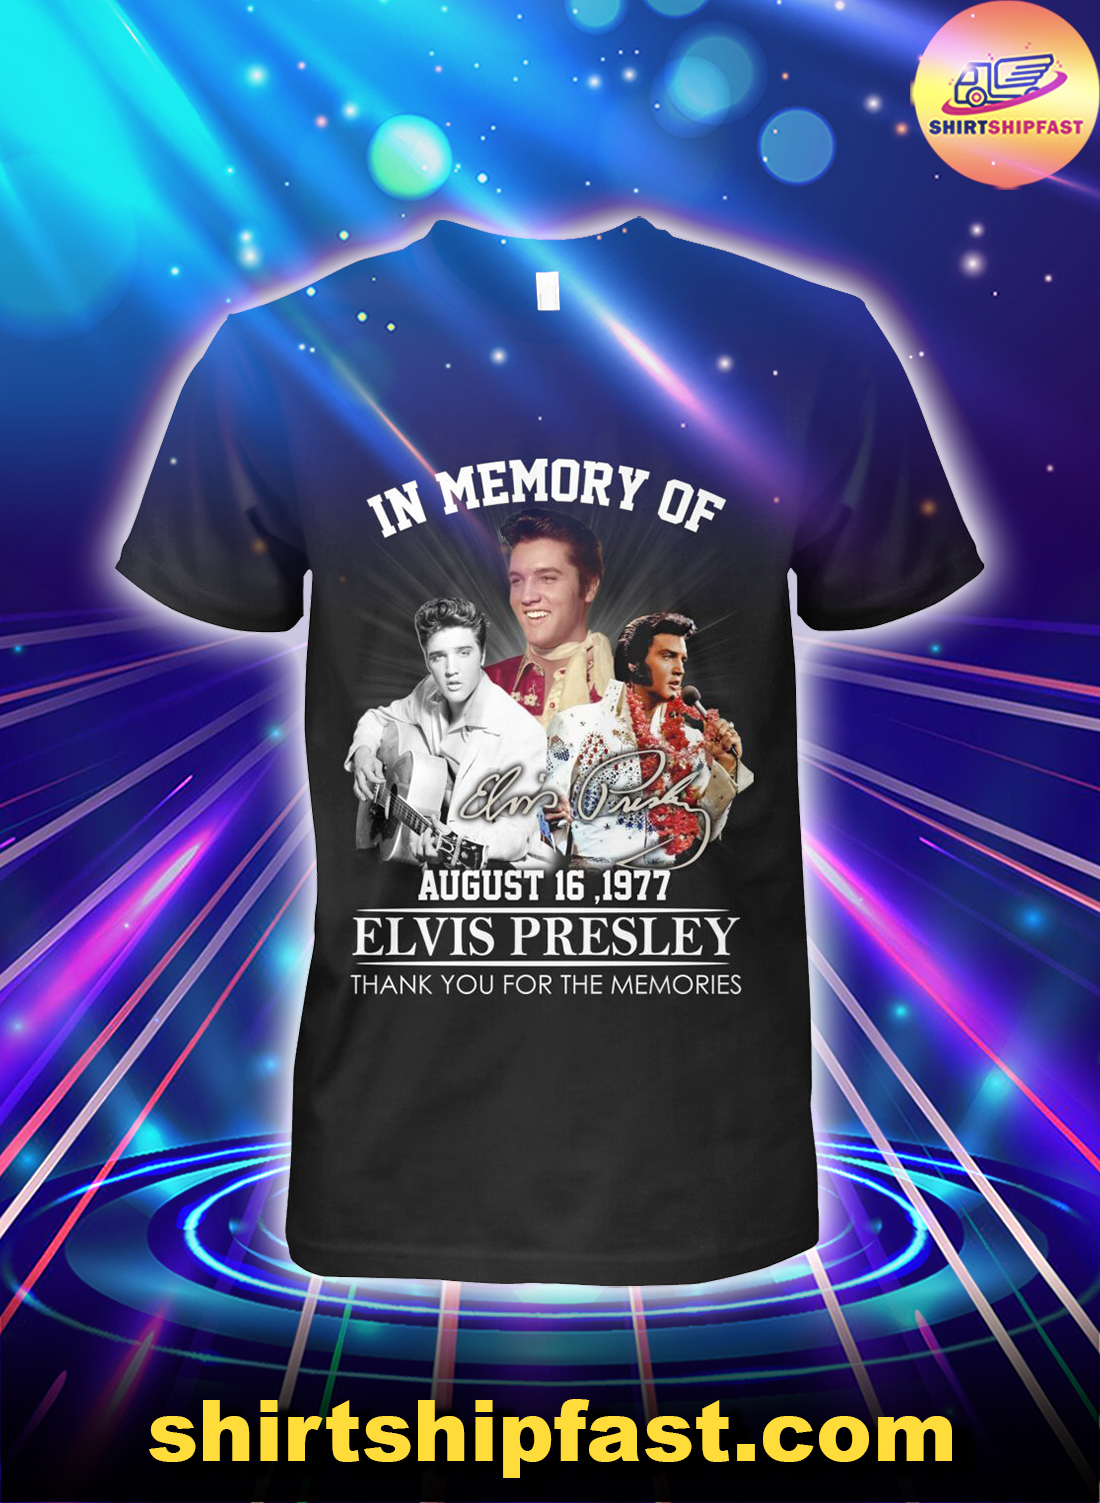 In memory of August 16 1977 Elvis Presley thank you for the memories shirt